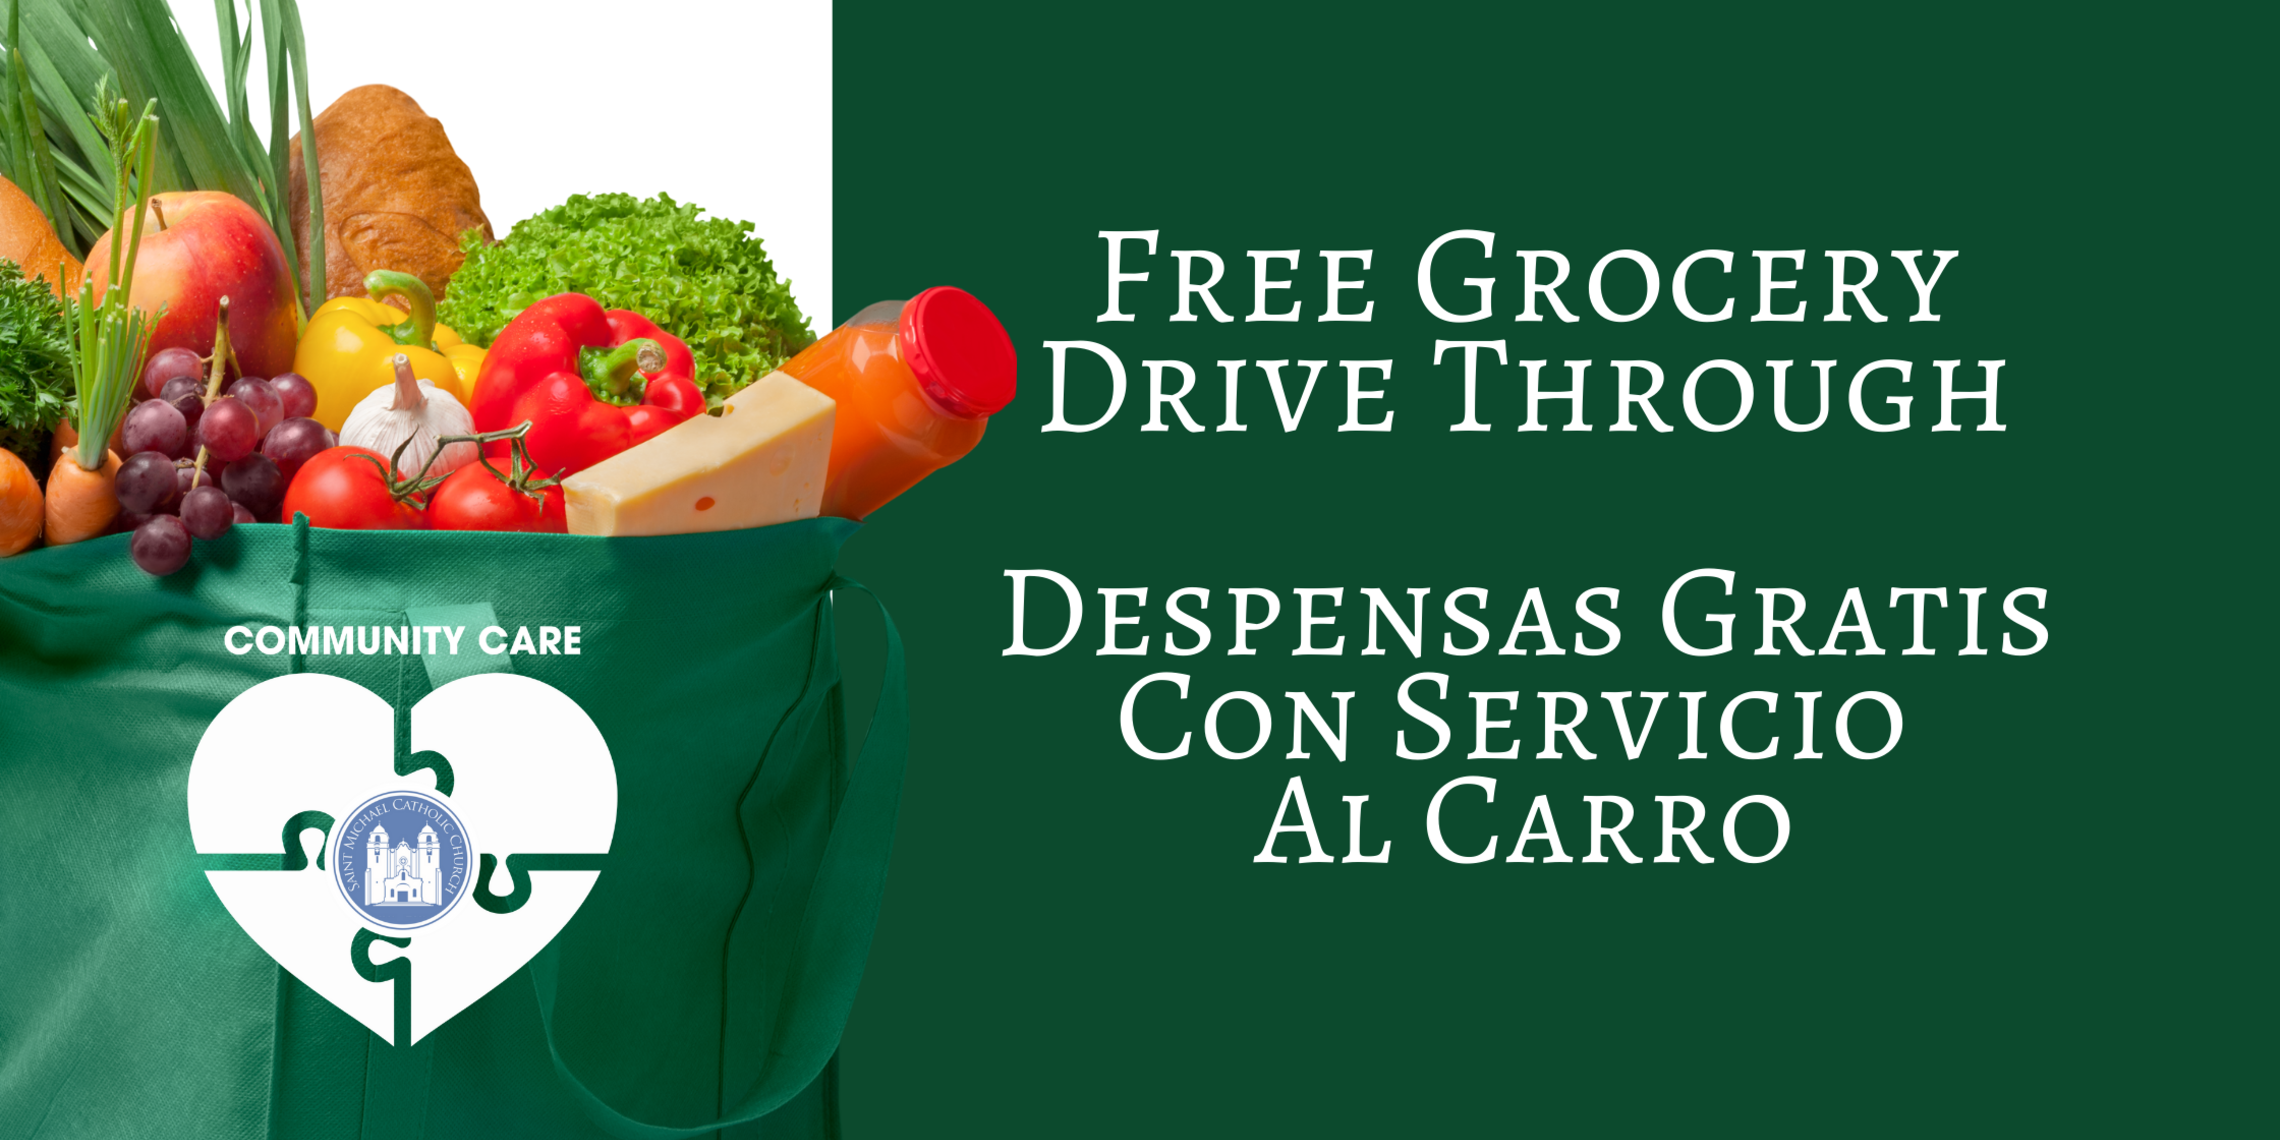 Free Grocery Drive Through   Web